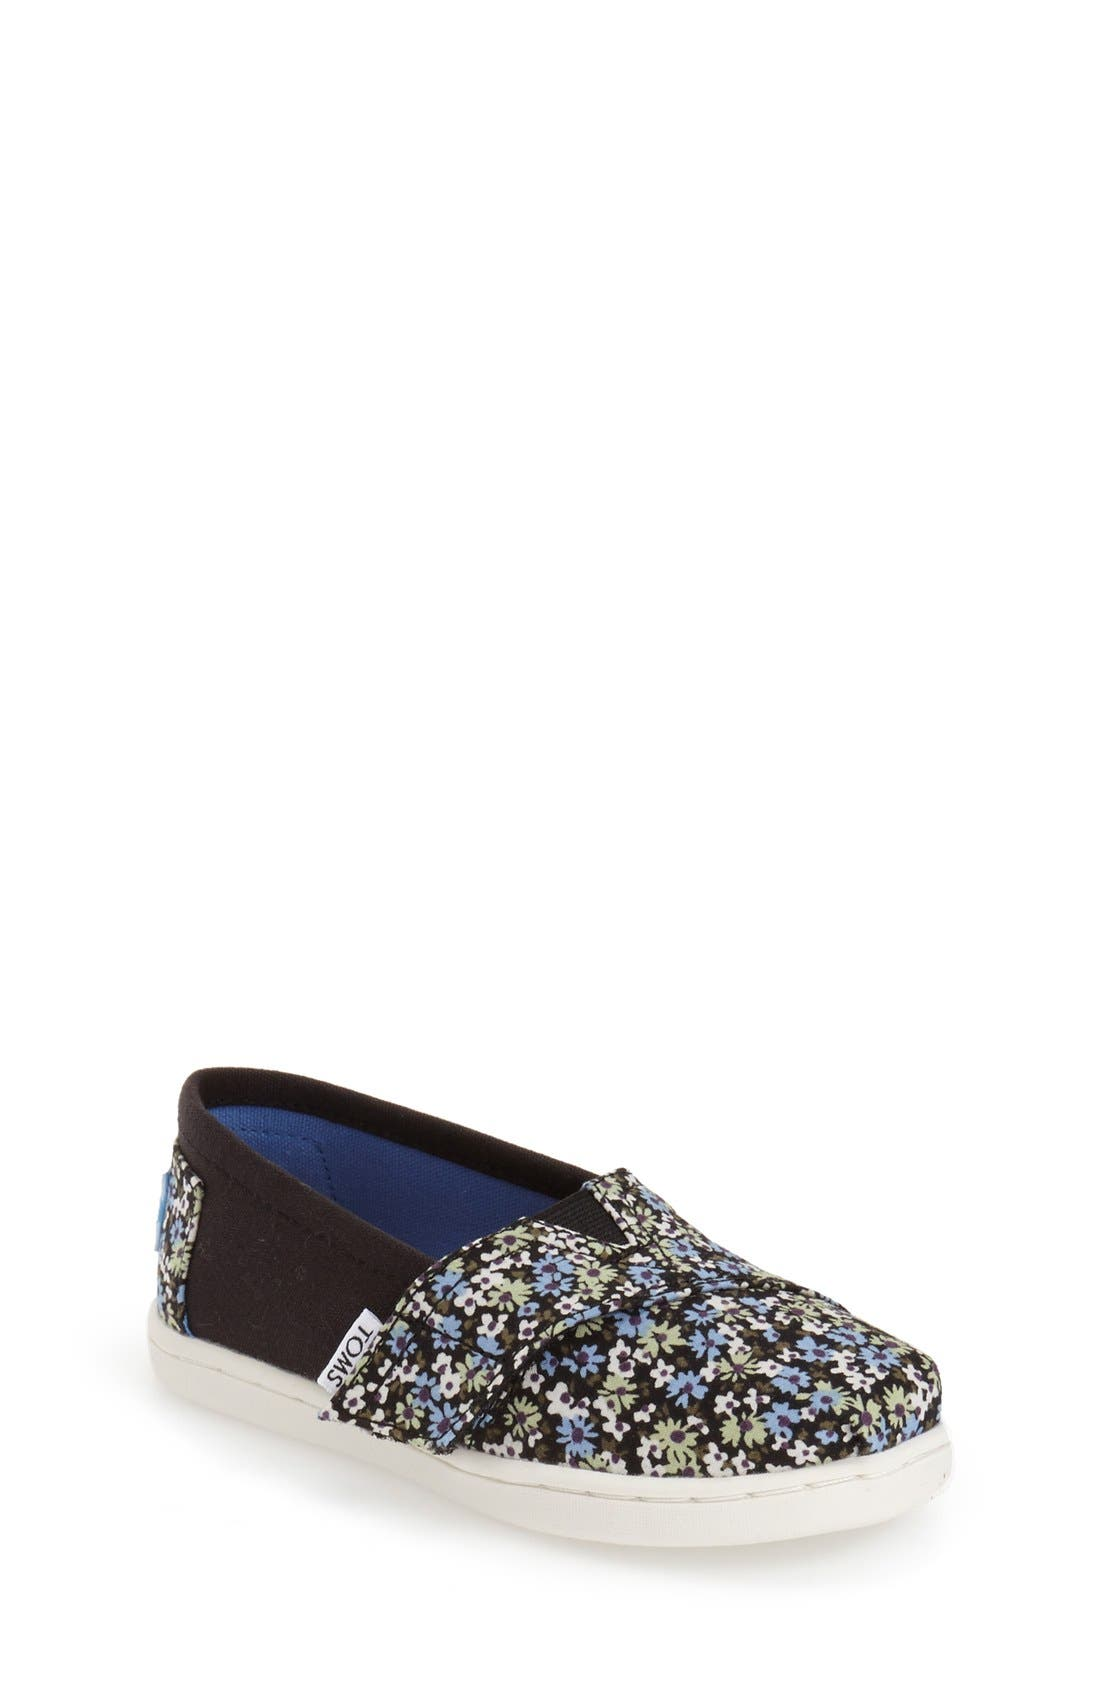 'Classic - Black Canvas Ditsy Floral' Slip-On, Main, color, 001